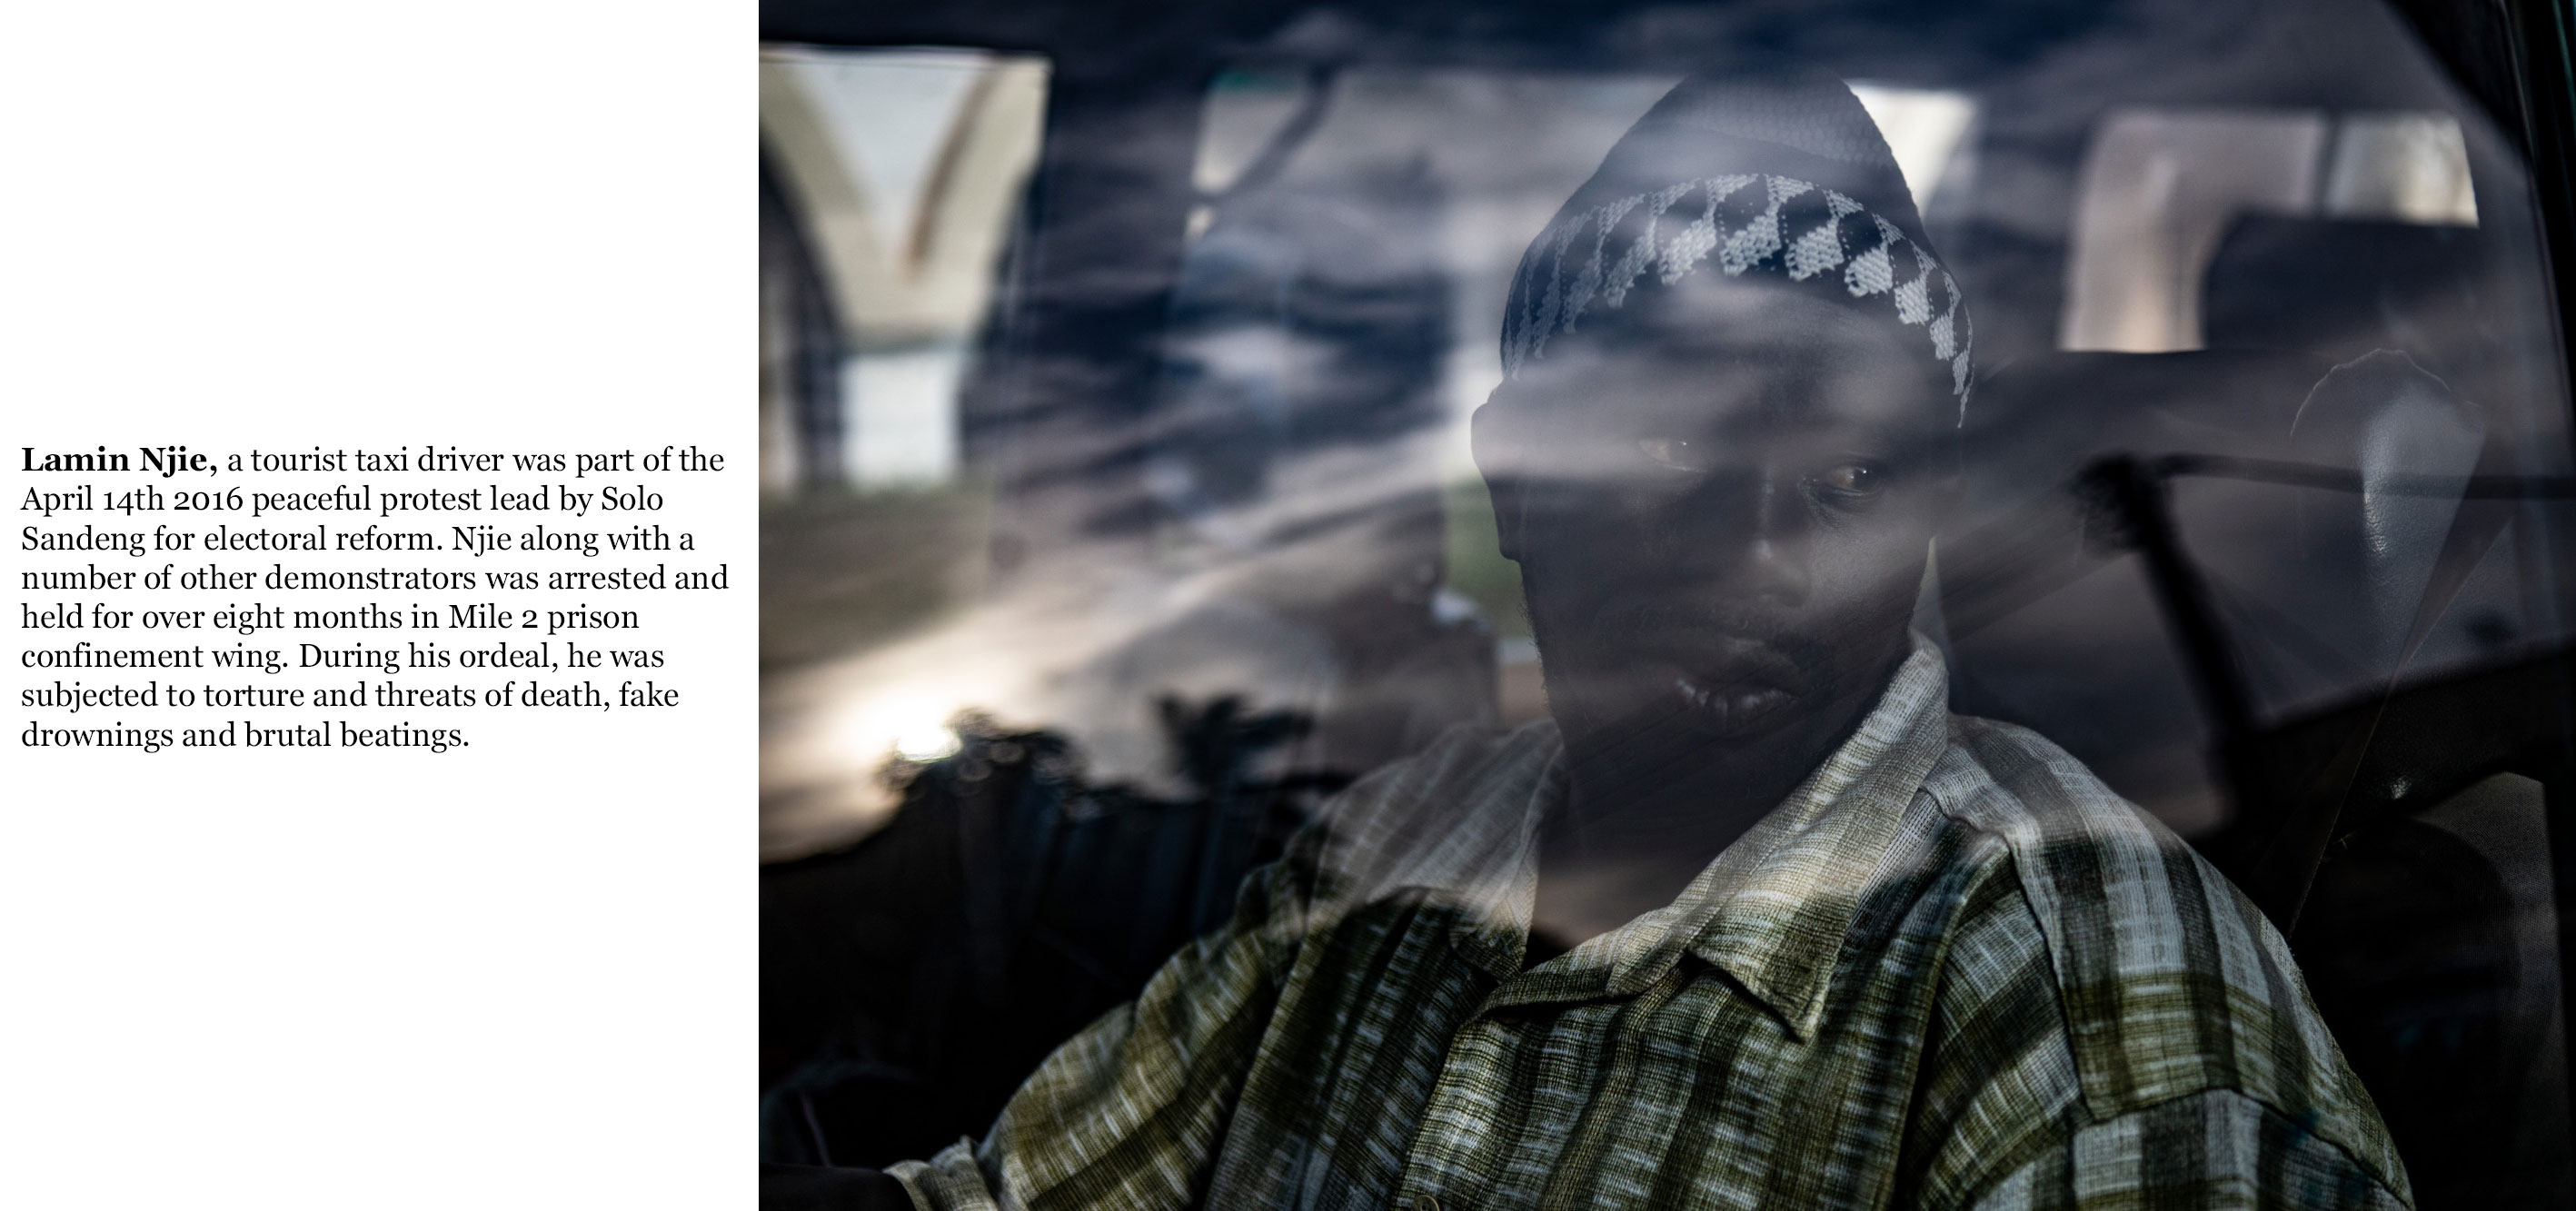 Gambia victims, and resisters - held unlawfully in Mile 2 Prison, lamin_njie-4215_TEXT_WEB